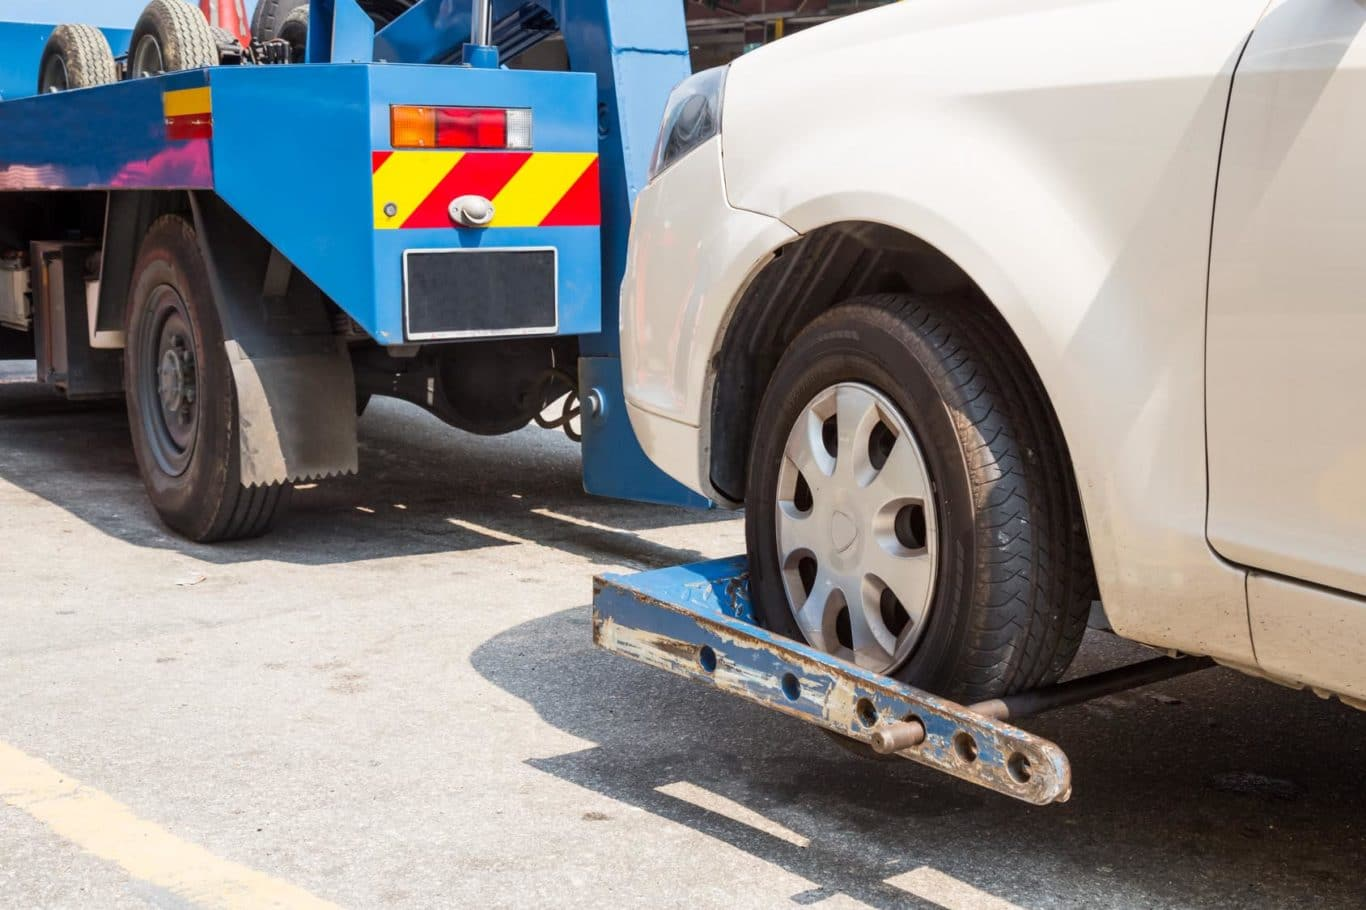 Carnew expert Breakdown Assistance services